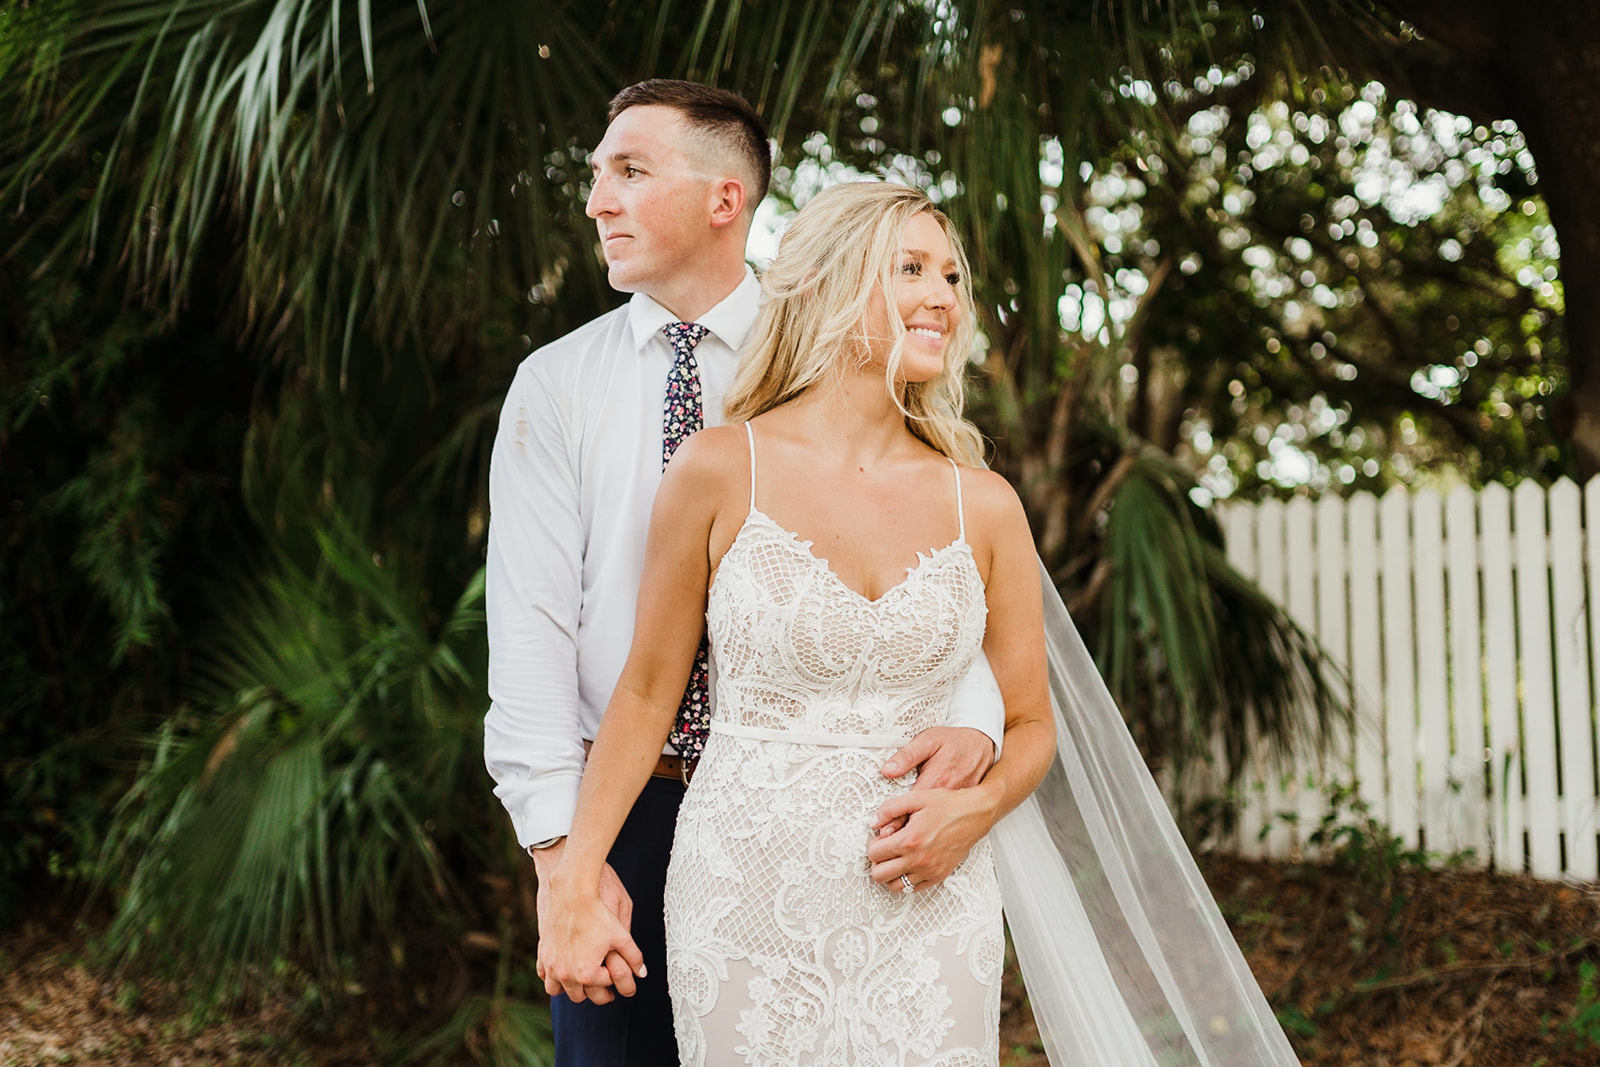 Bride & Groom holding hands looking opposite directions in lush foliage on Tybee Island Beach